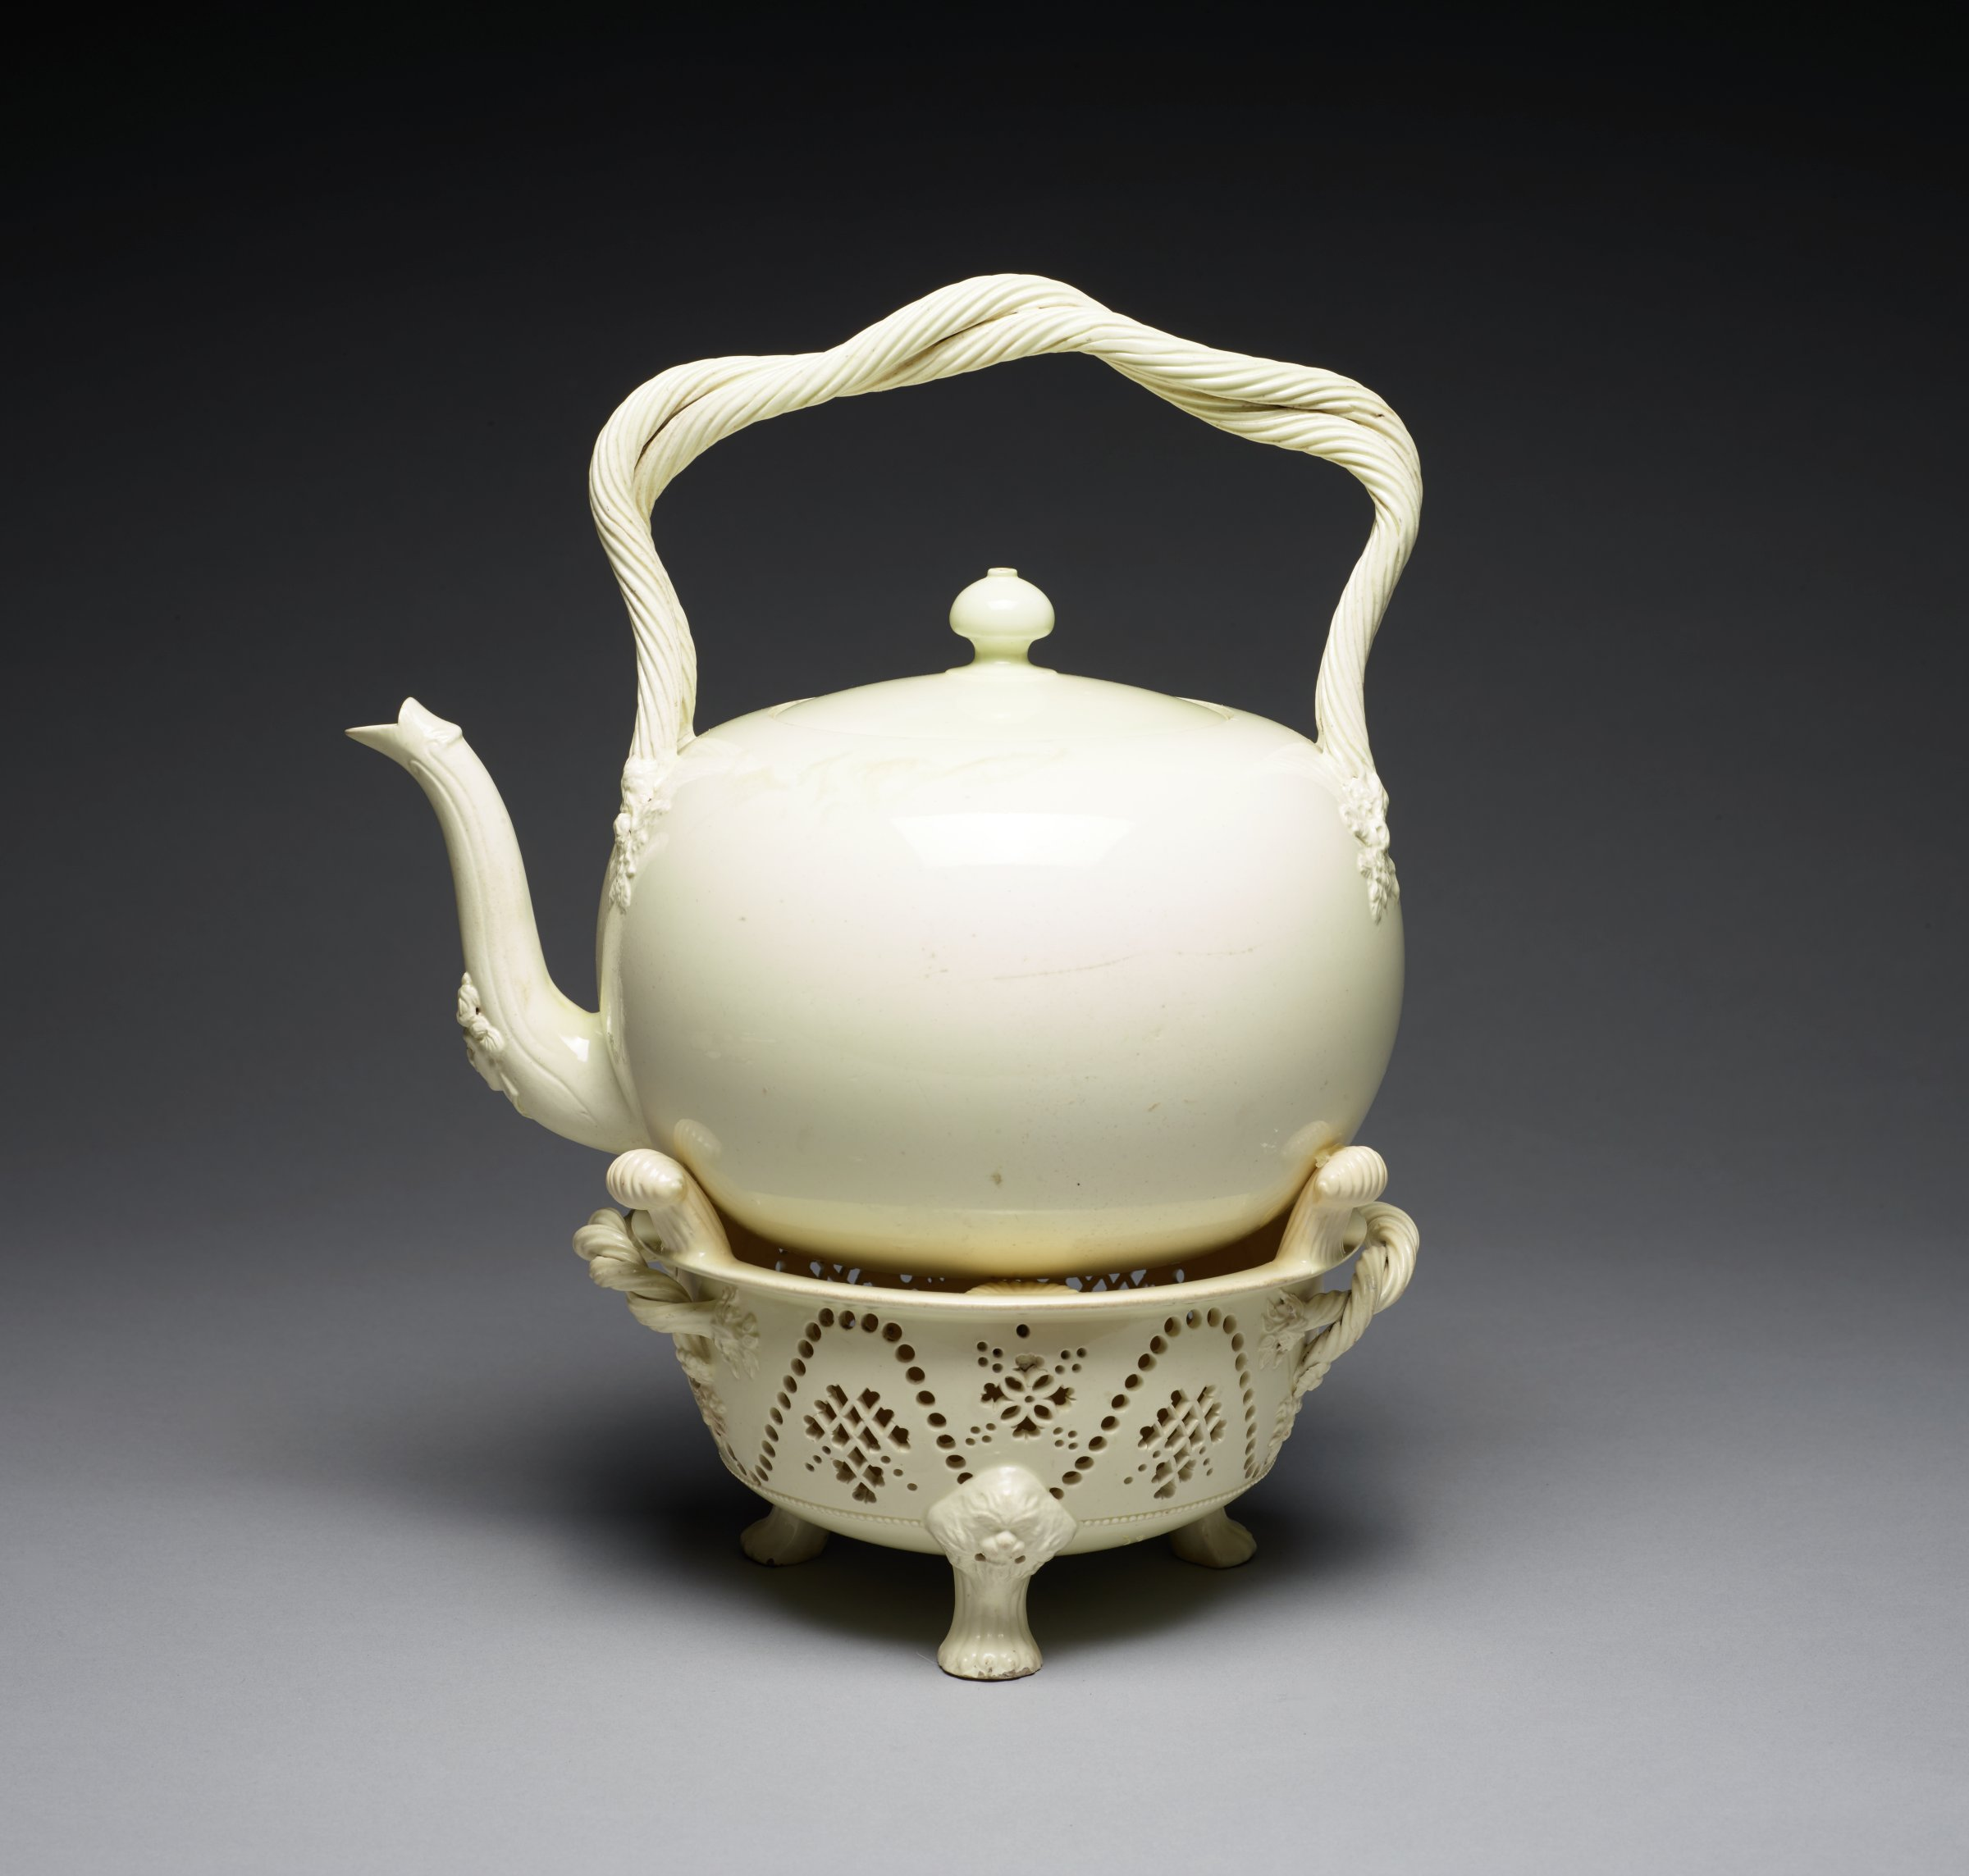 Creamware hot water kettle on stand, the kettle plain and bulbous with double rope, twisted bail handle that terminates on either side in floral heads, the base of the spout is supported by a female head, with flat cover with mushroom finial, the conforming stand of circular form and supported by three masked feet, the body of the stand is embellished with decorative piercing, with two rope twisted handles and three lugs which prevent the kettle from sliding.